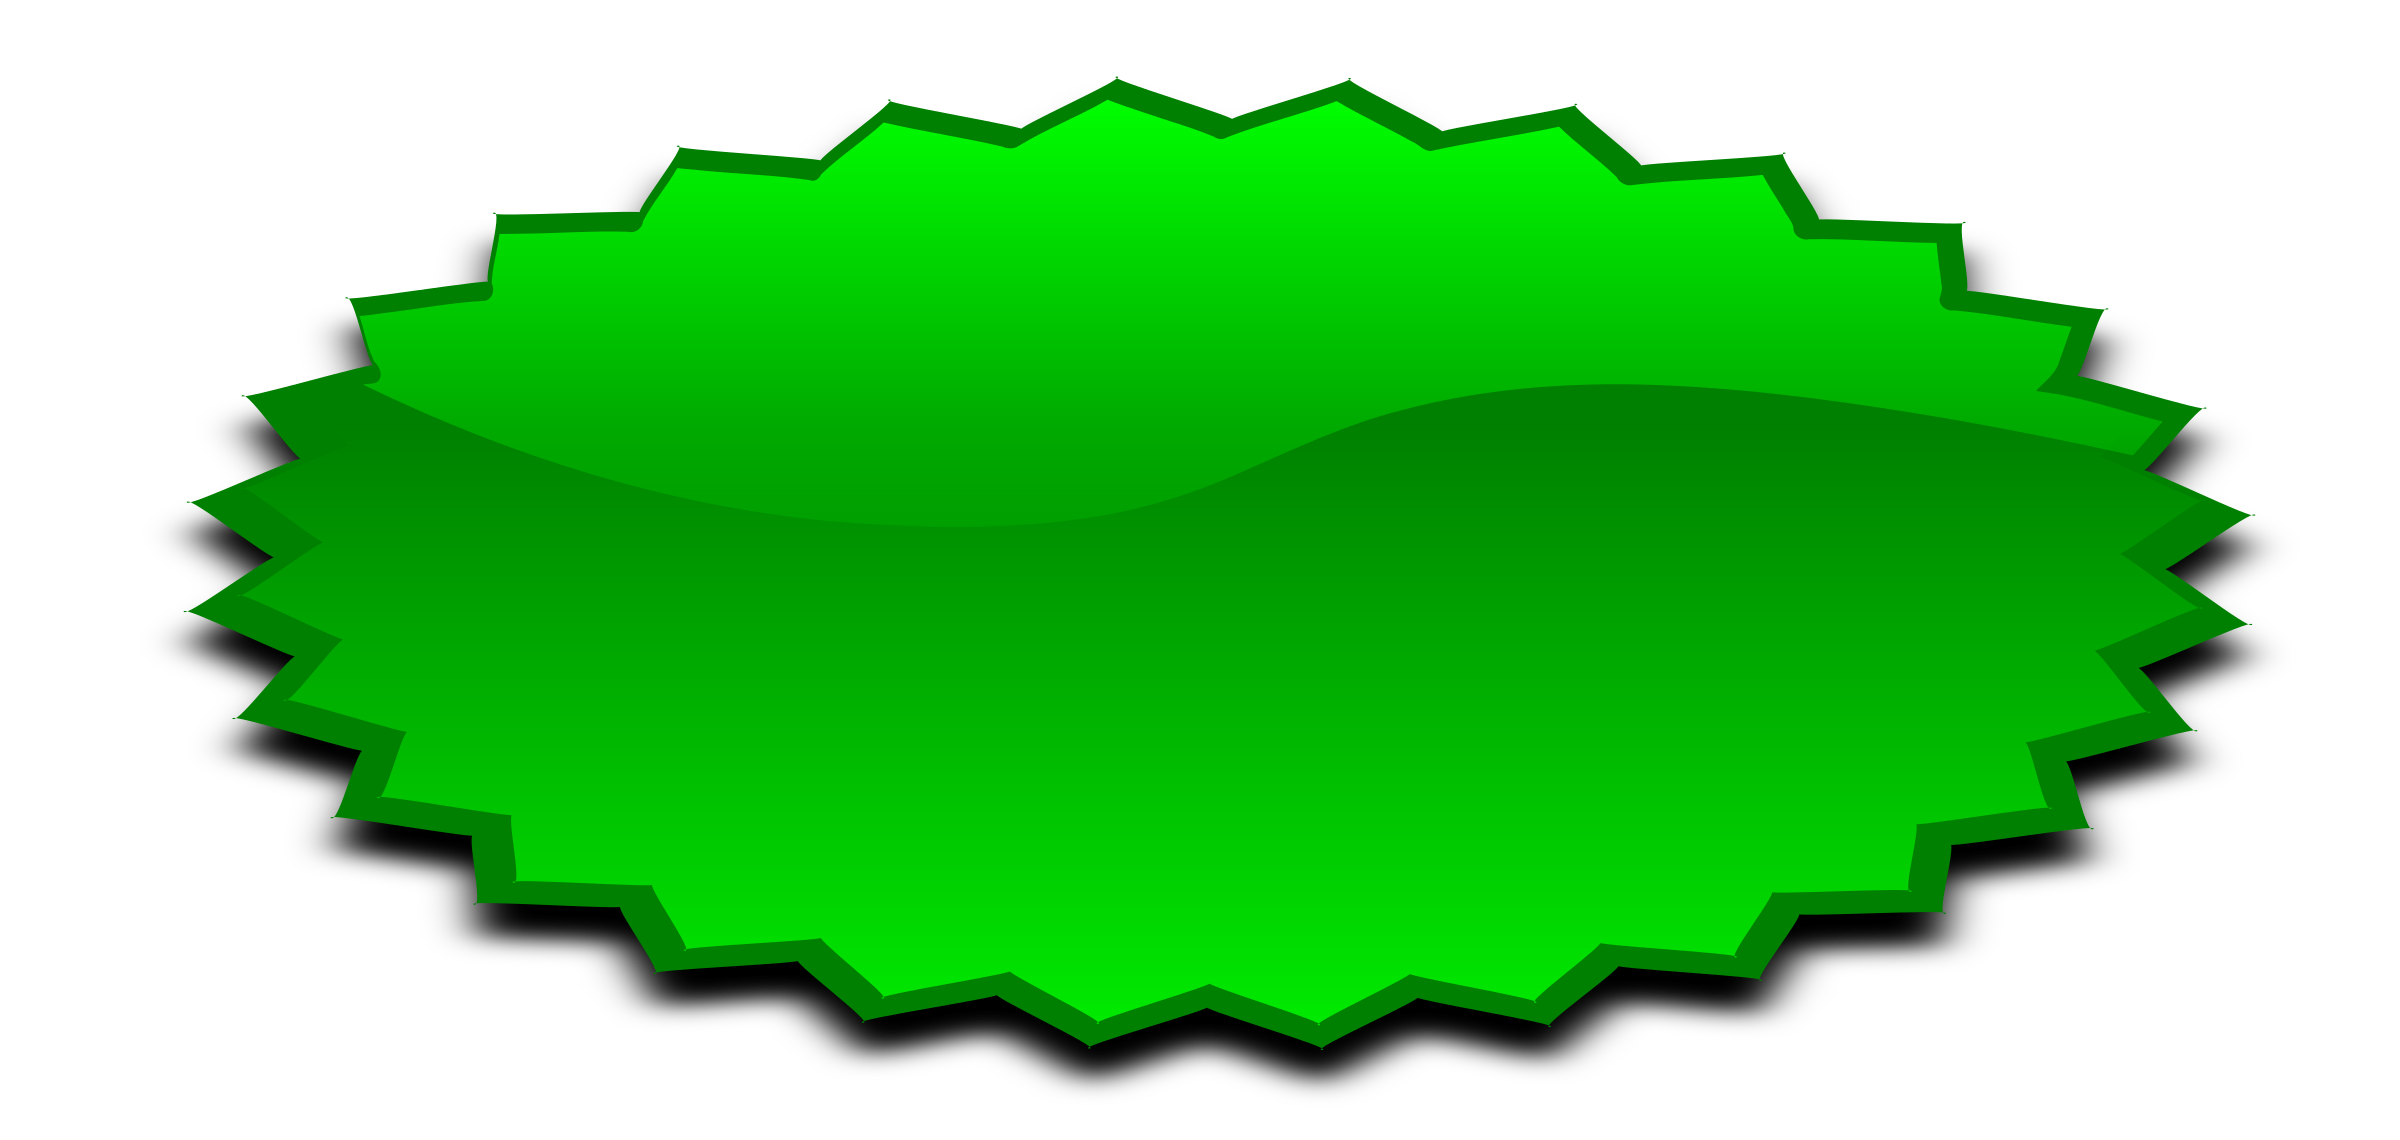 Burst clipart green. Stars icons png free